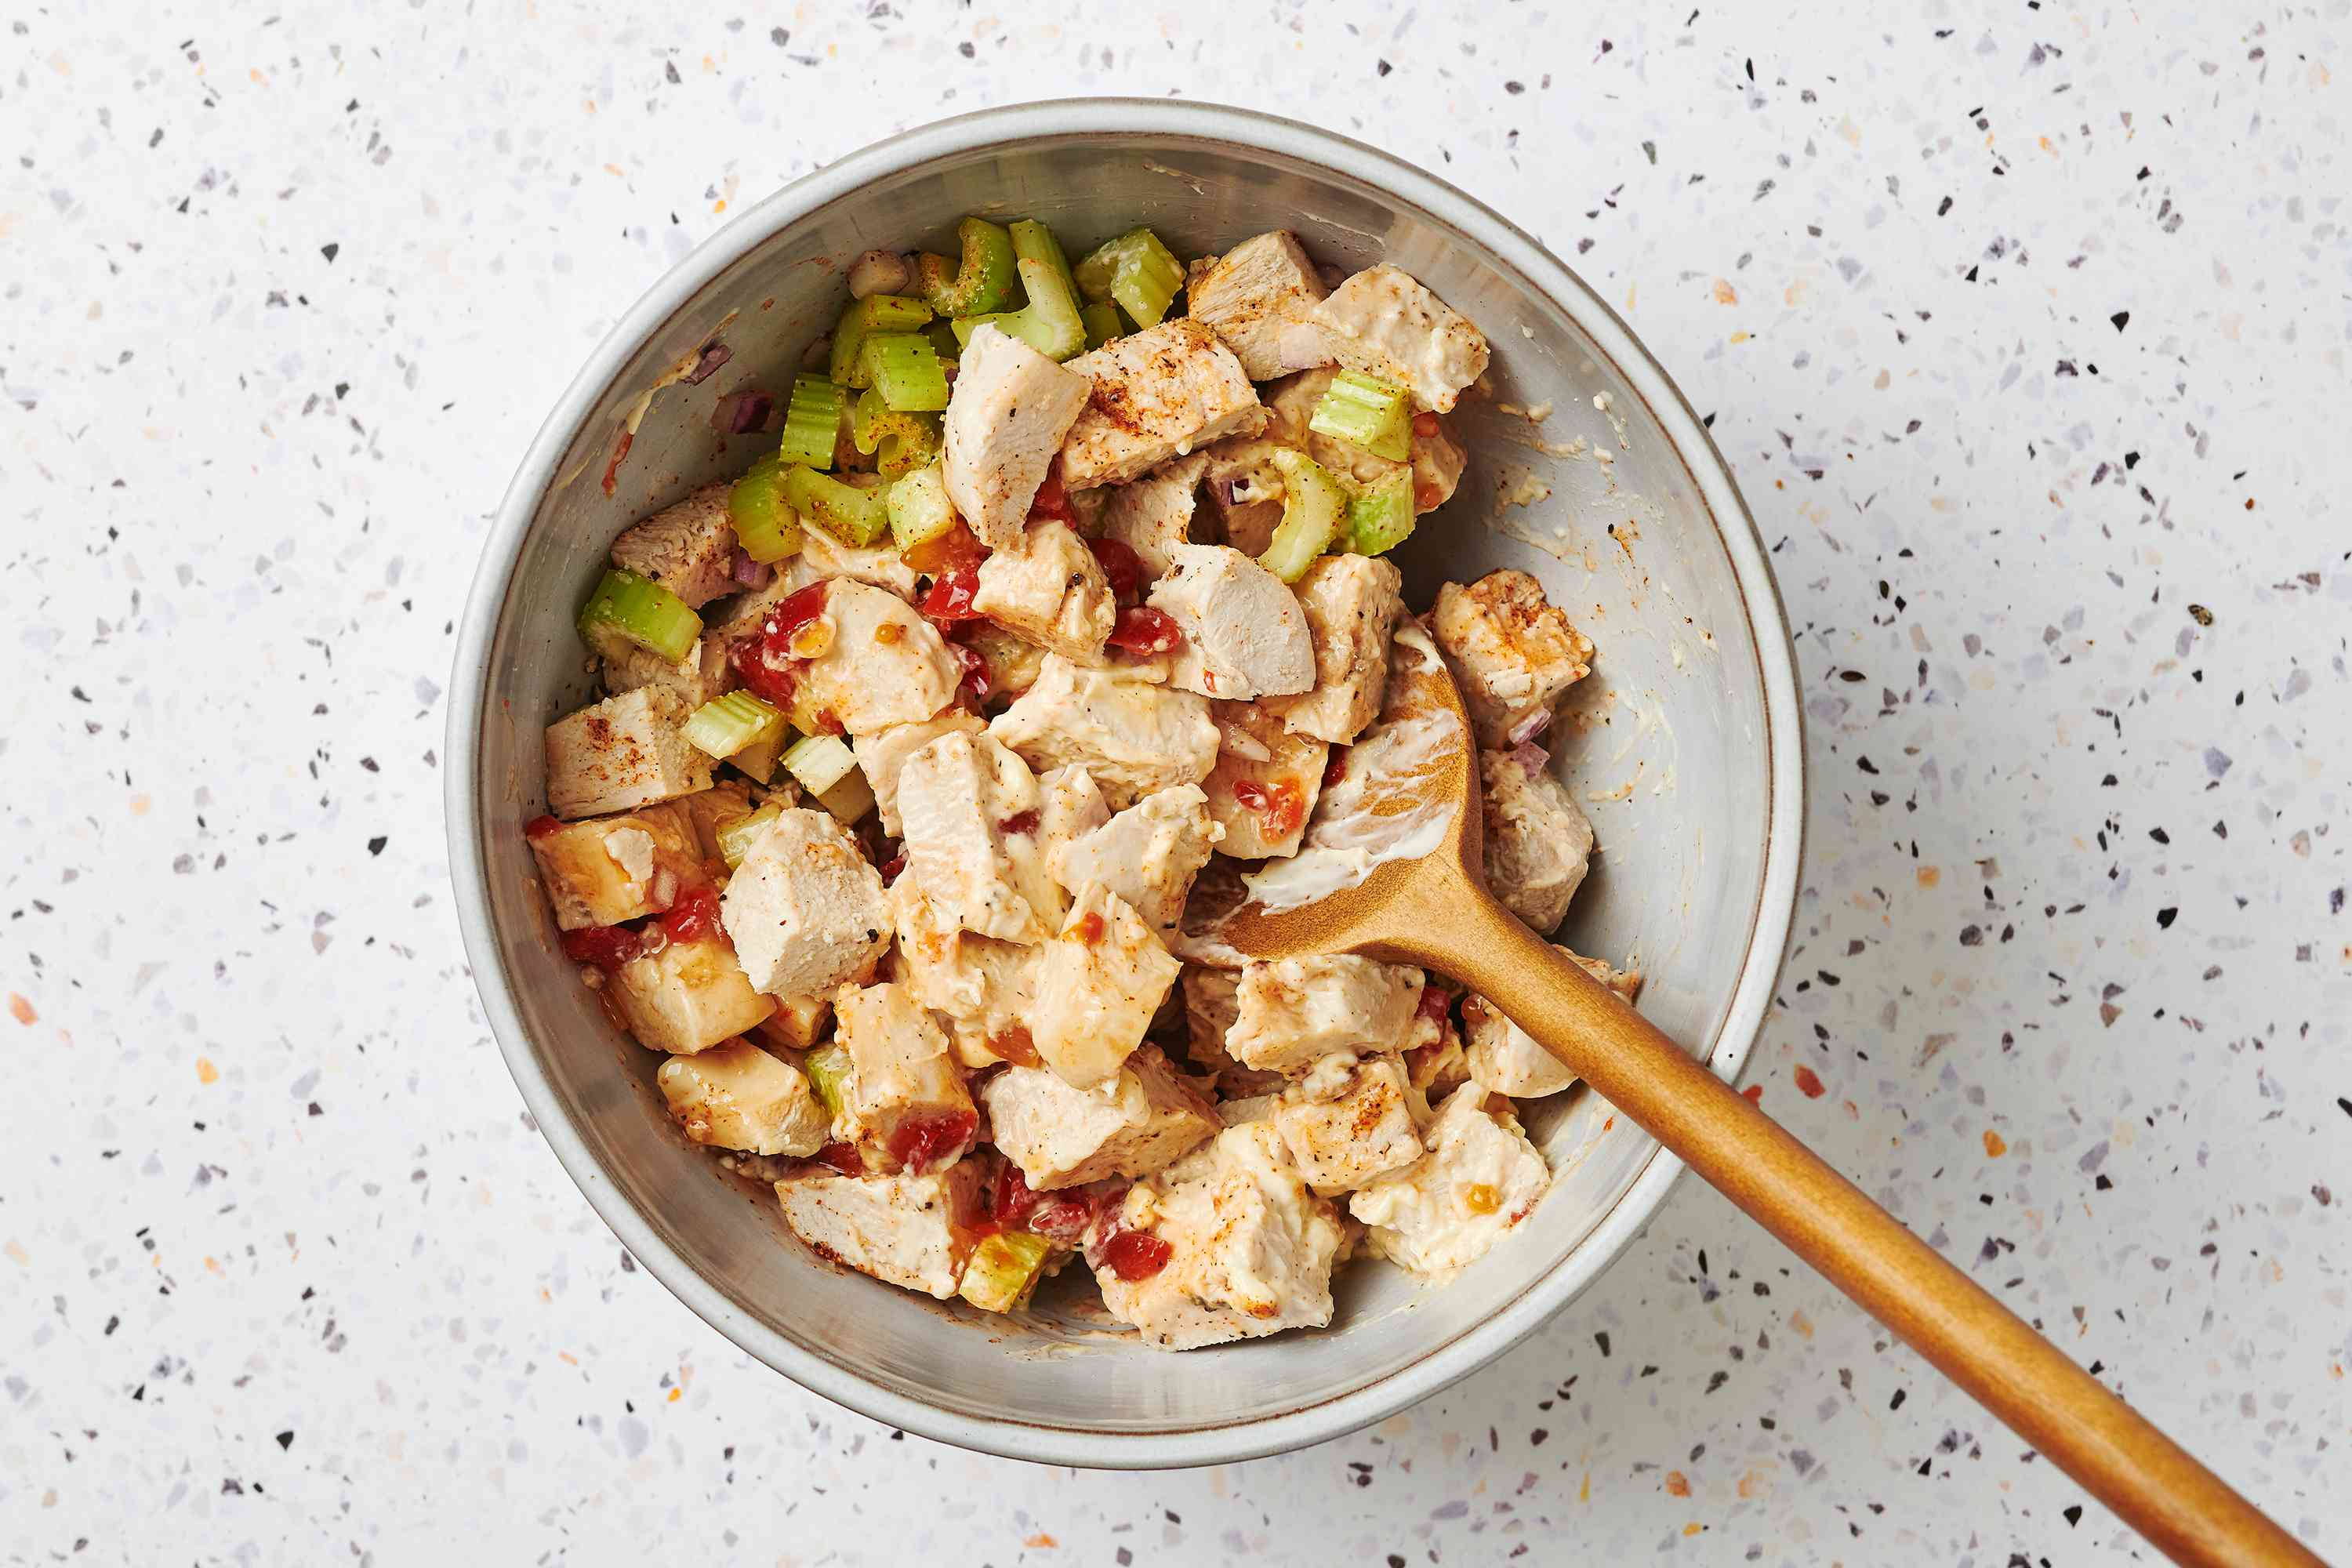 Combine chicken, celery, onion, mayonnaise, lemon juice, pepper, relish, seasoning, and salt in a bowl